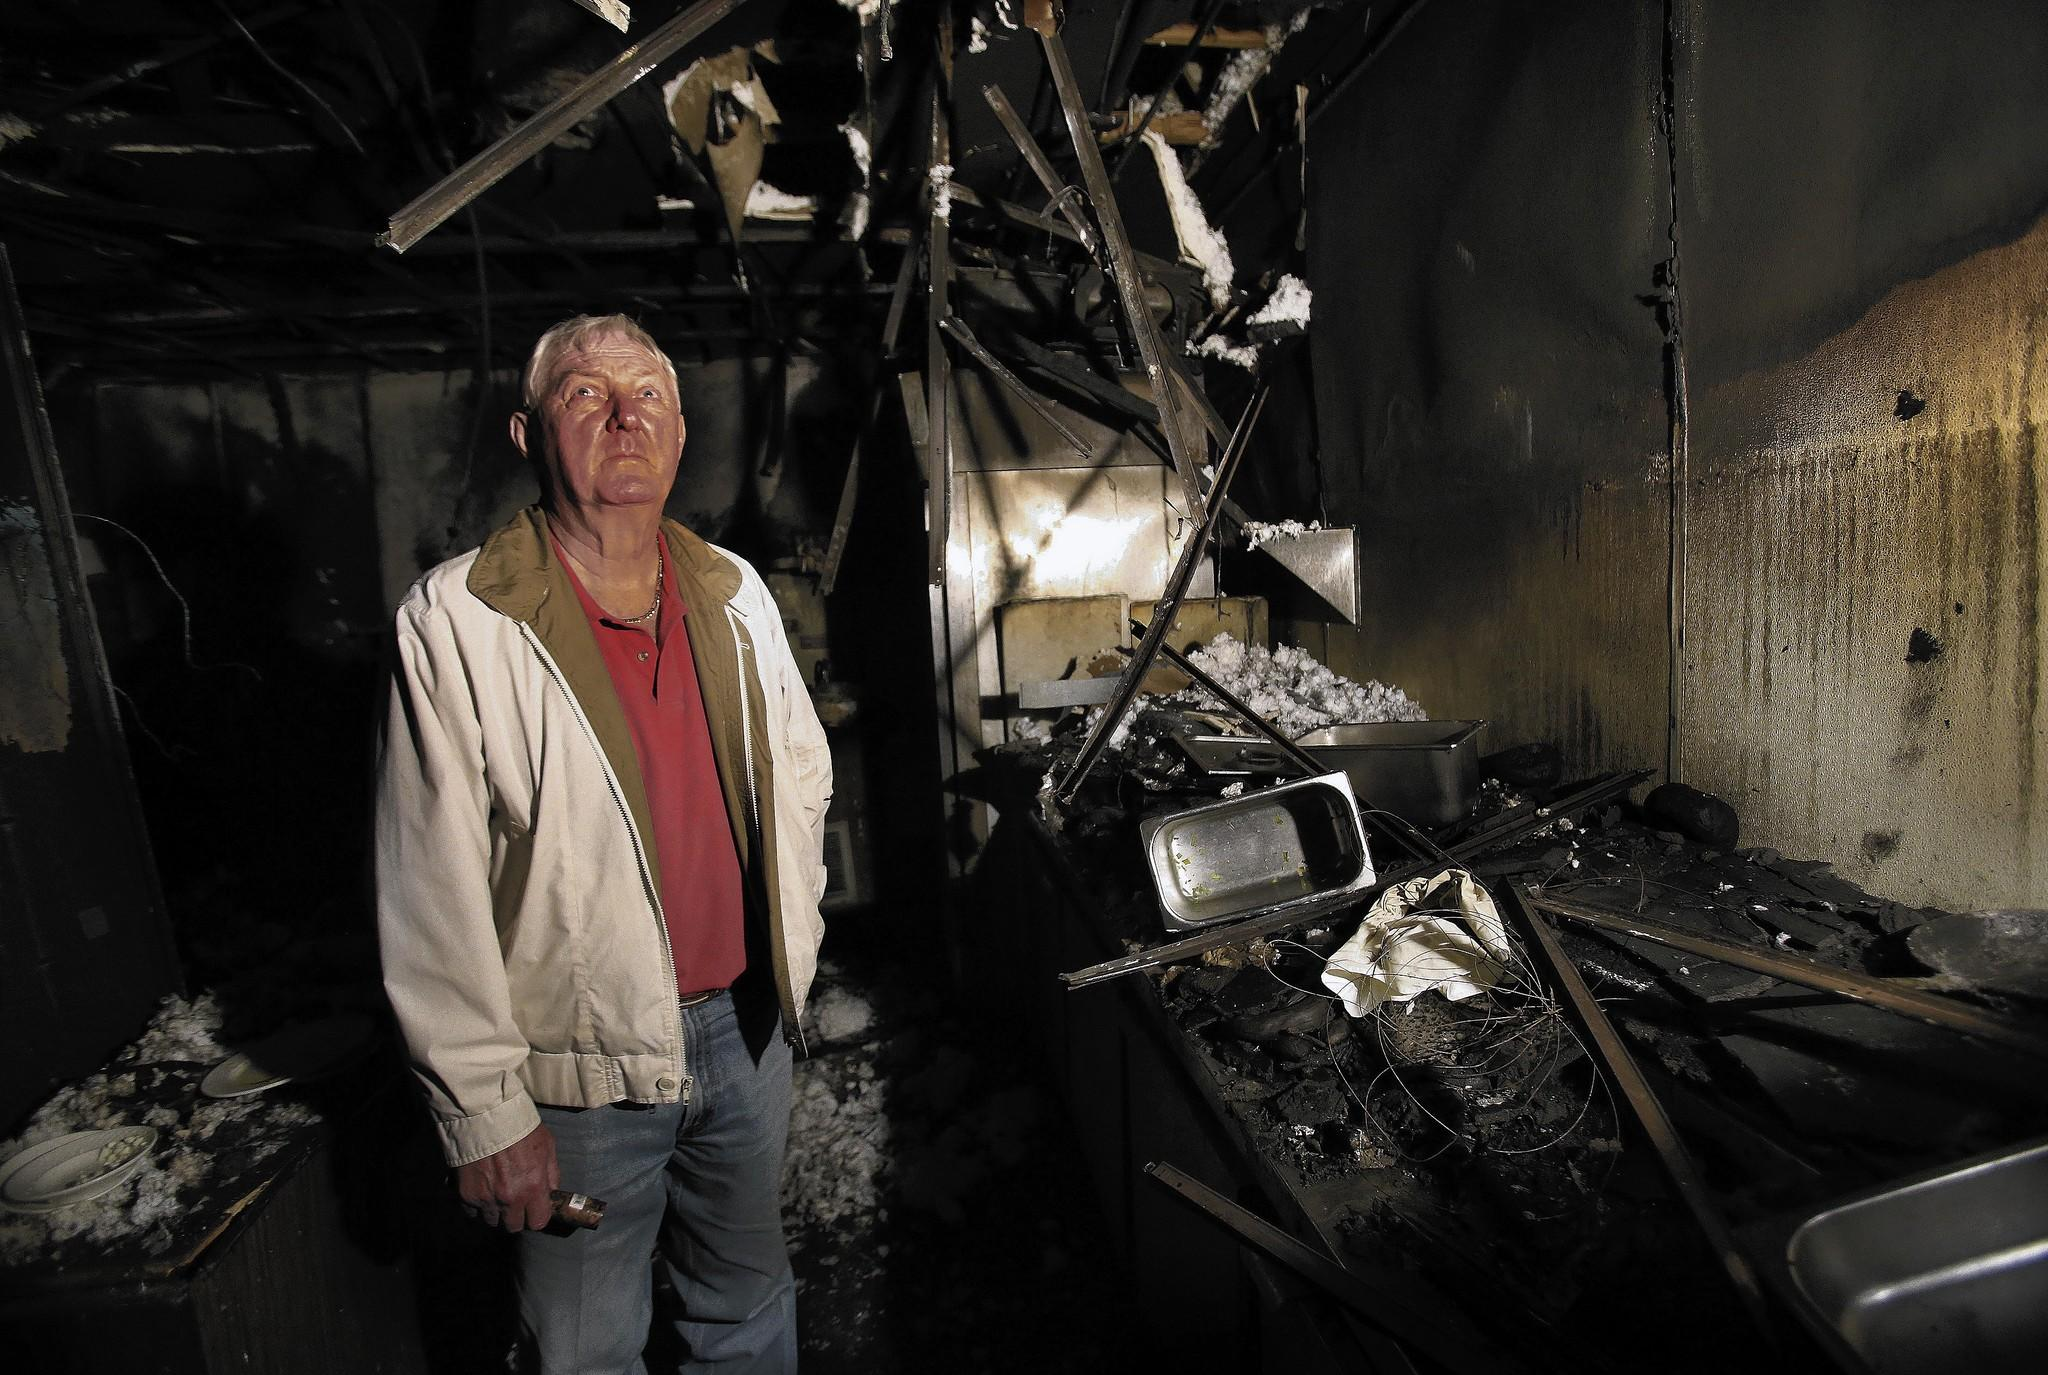 Vic Donahey Jr., founder of the popular Vic's Embers Supper Club, surveys the damage from a major fire that destroyed the restaurant.